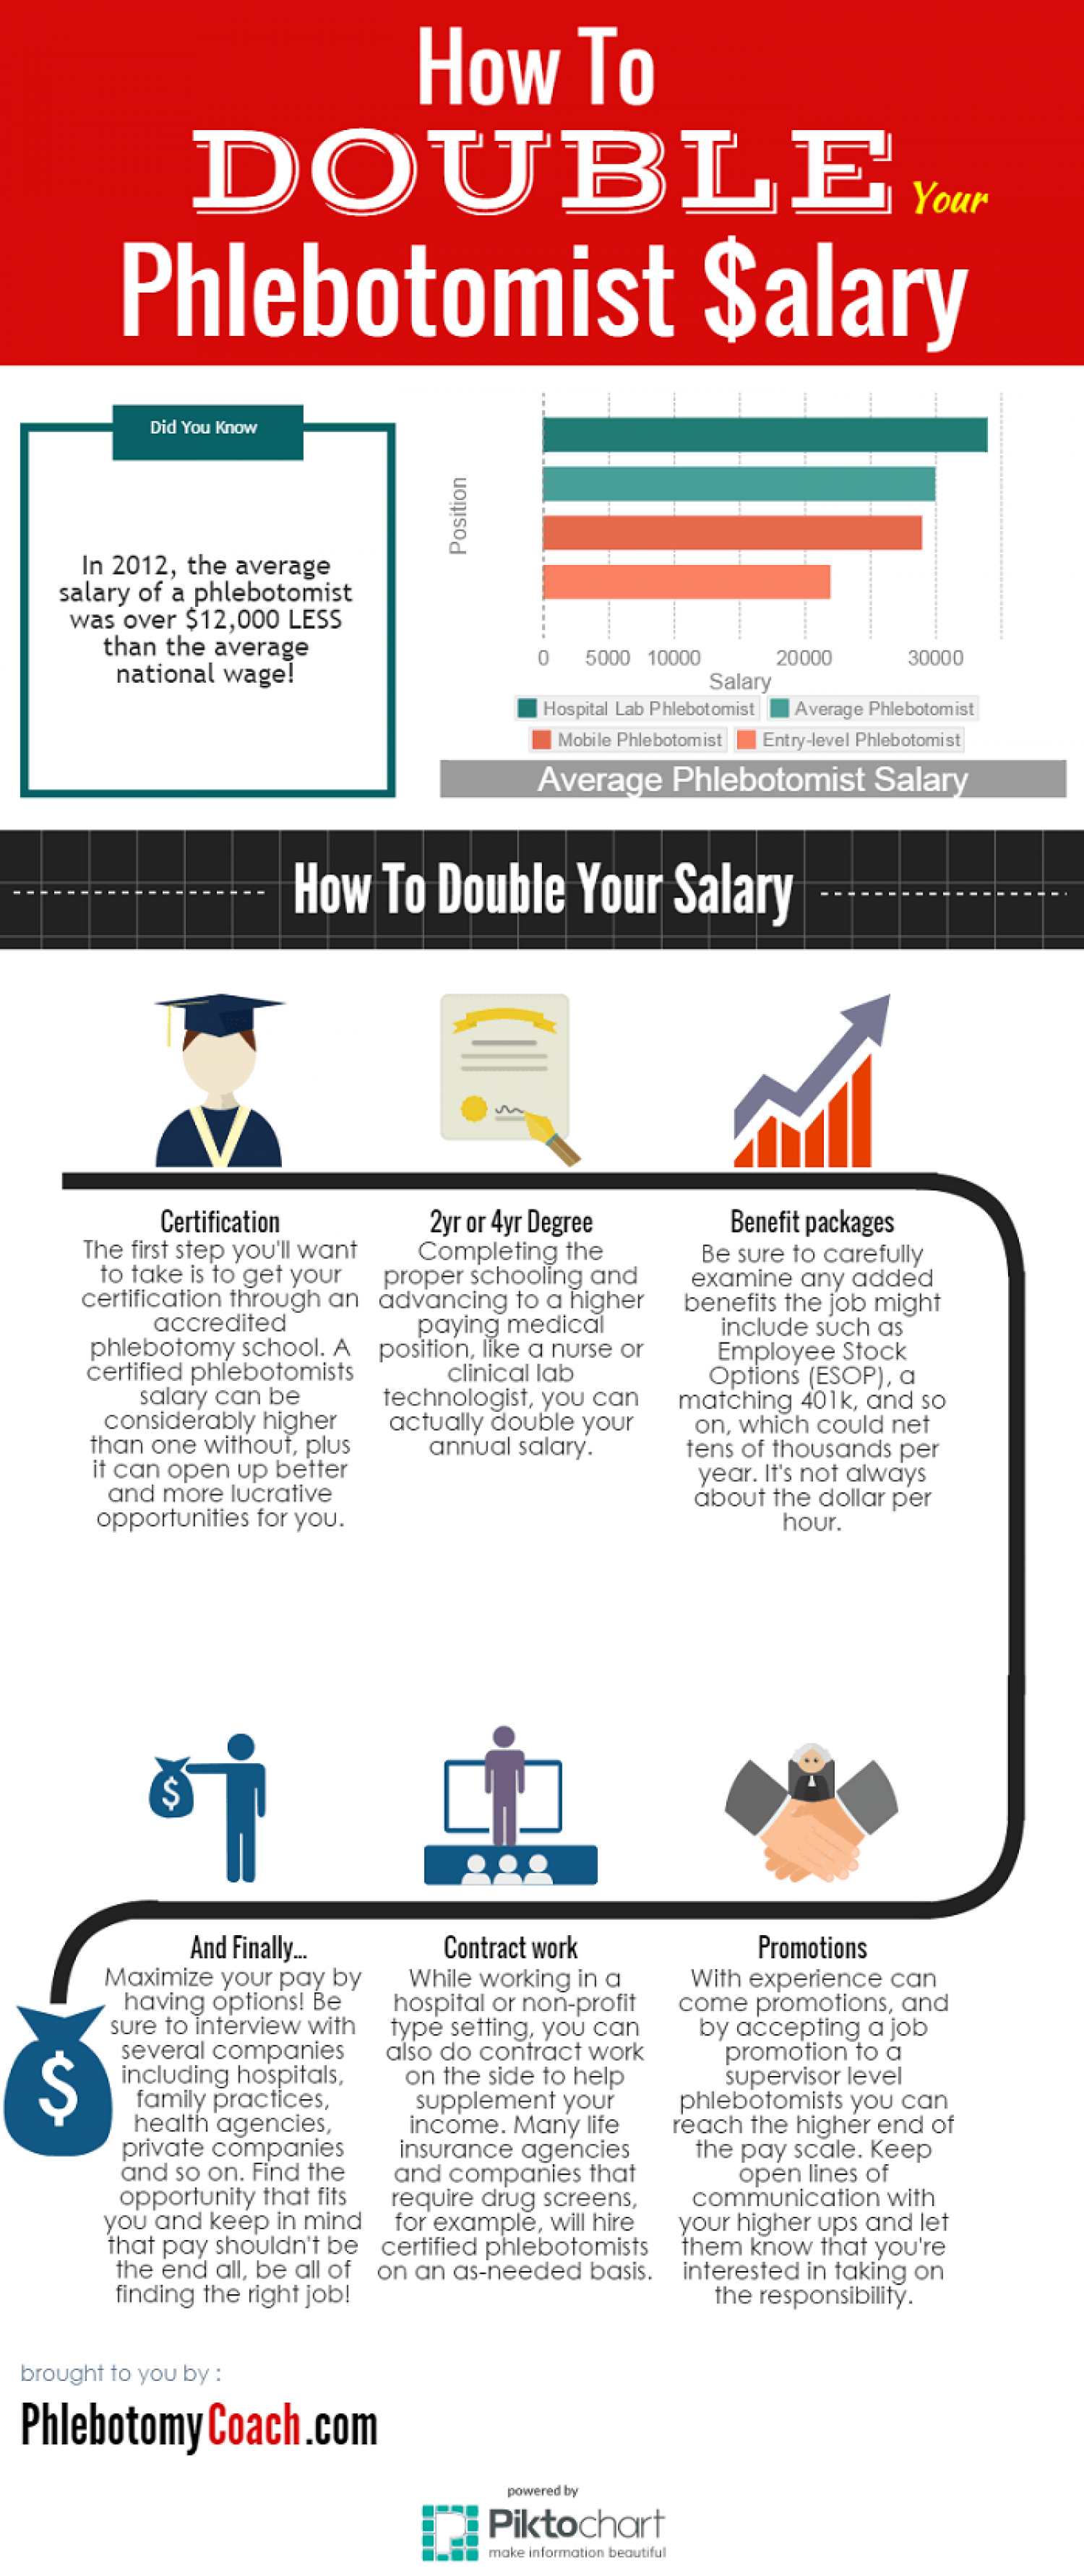 How To Double Your Phlebotomist Salary | Visual.ly